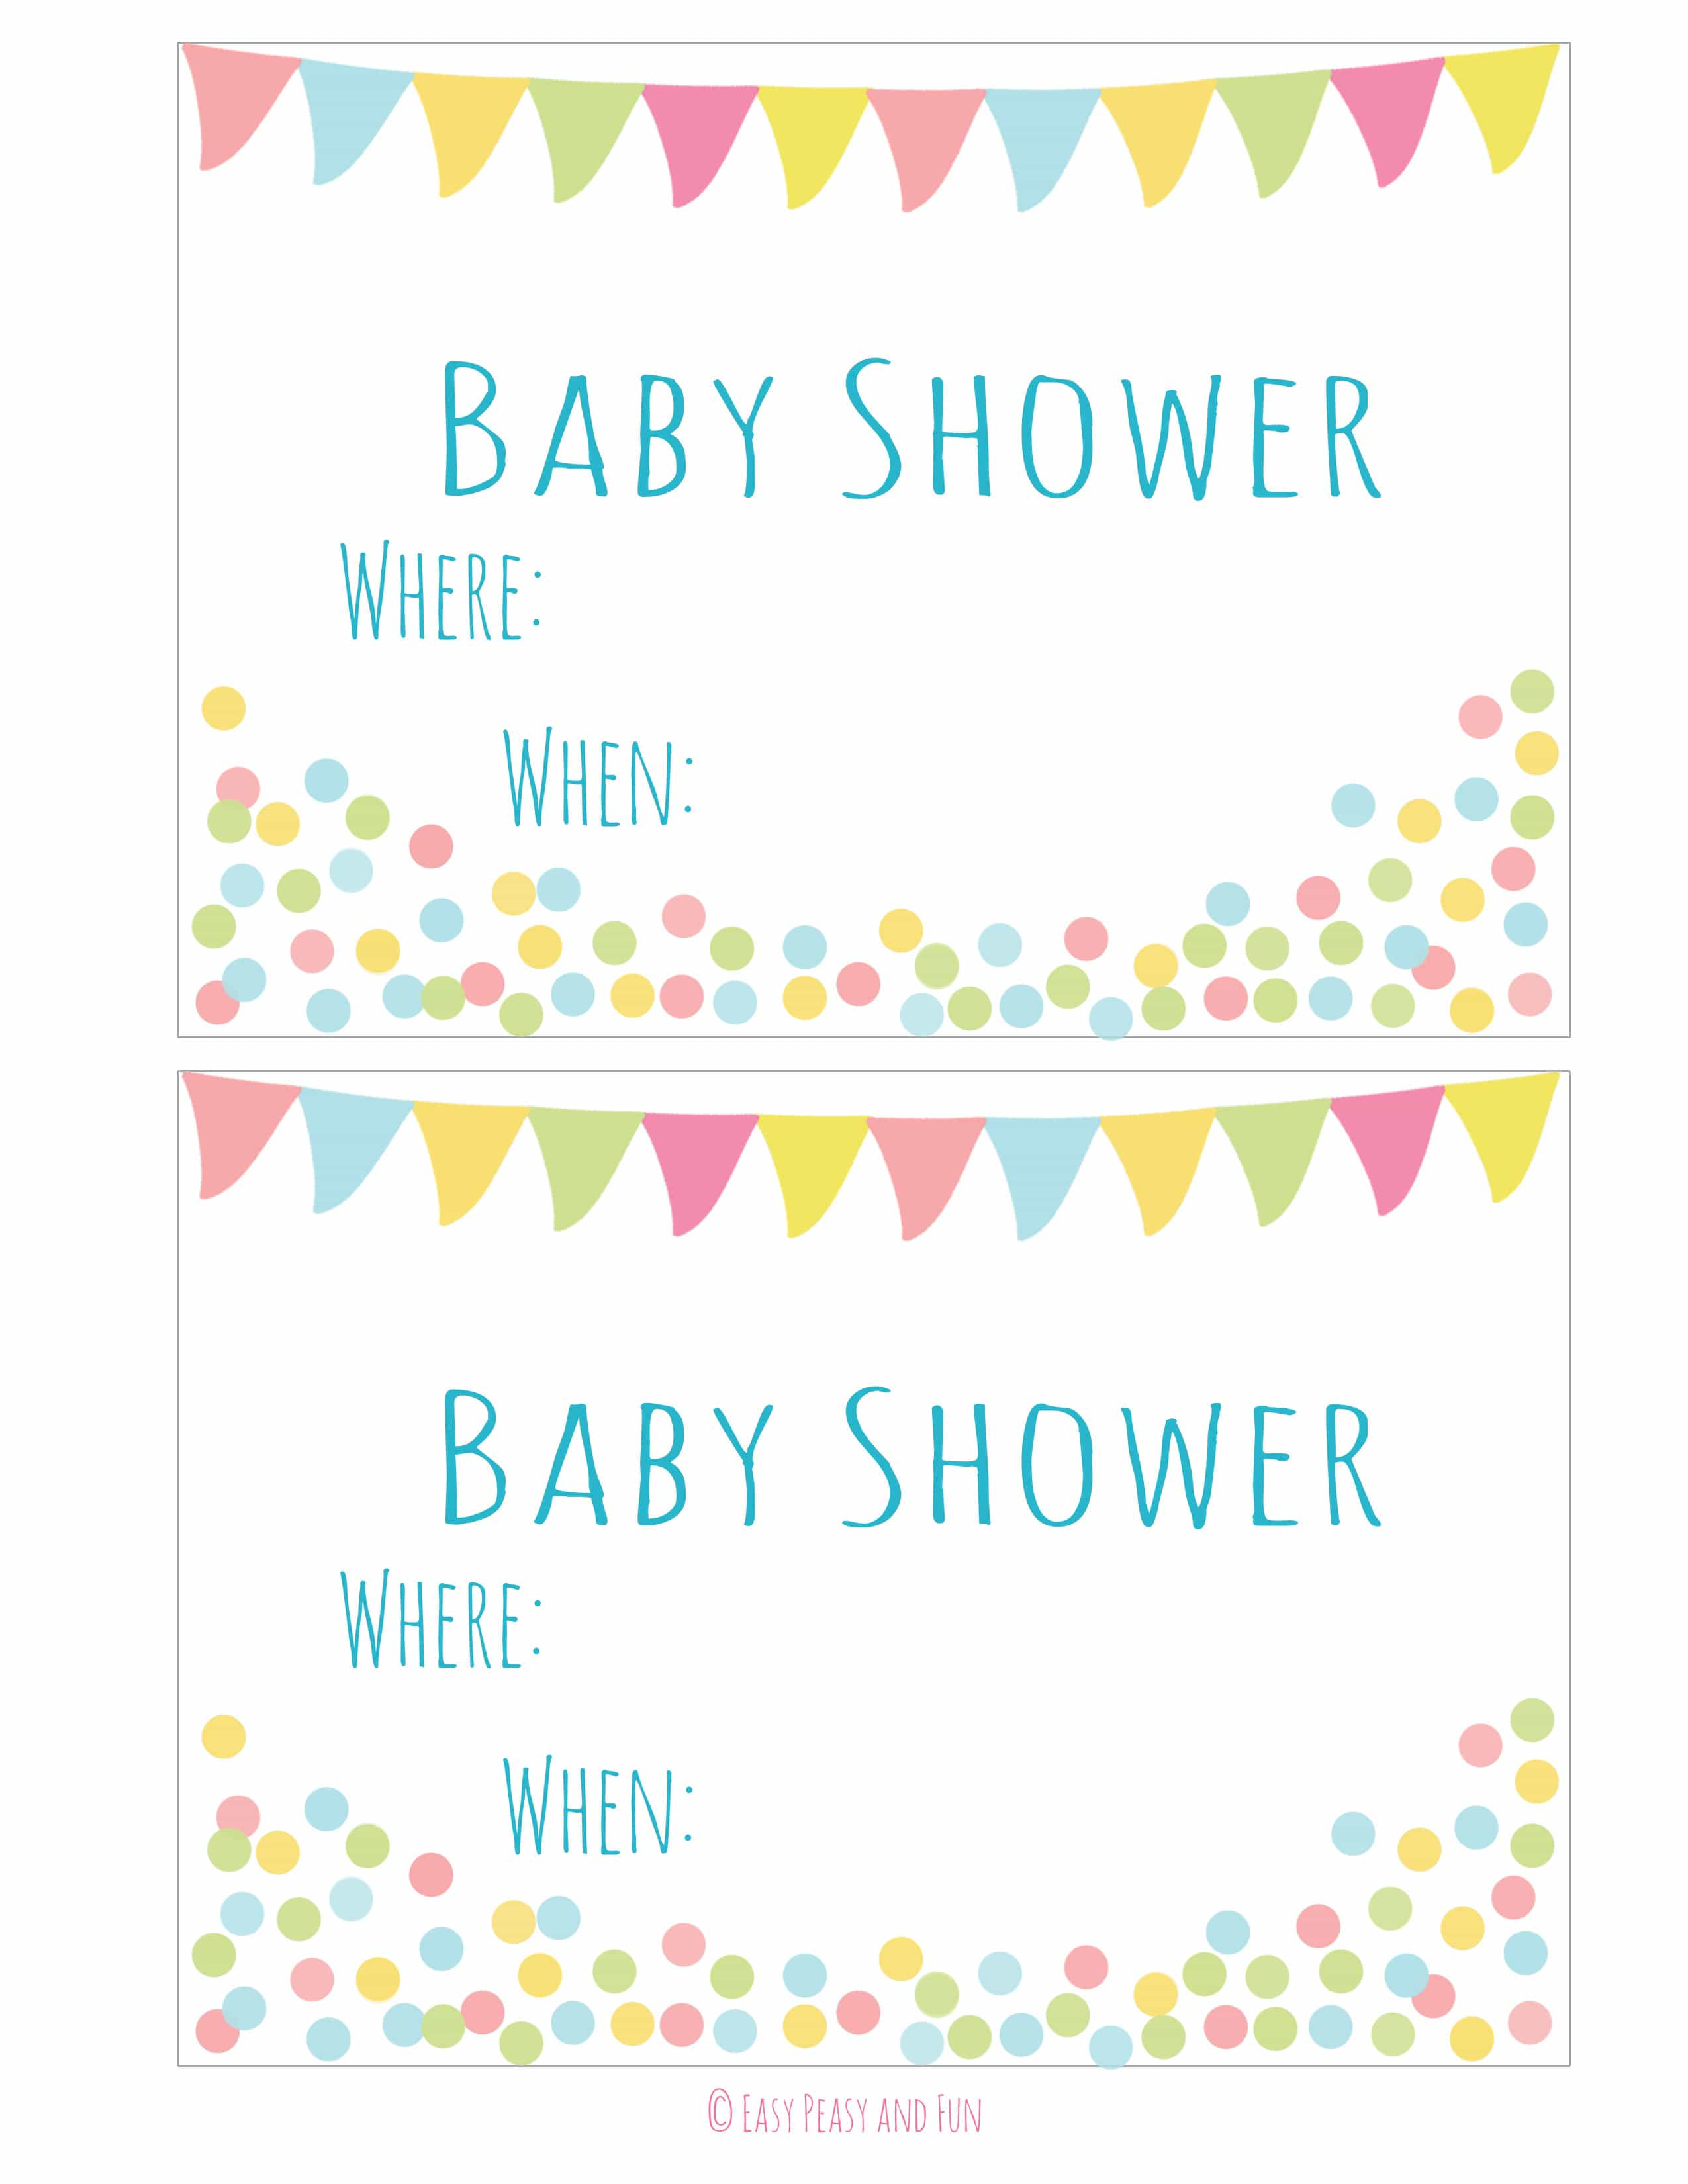 Free Printable Baby Shower Invitation - Easy Peasy And Fun - Free Printable Baby Shower Invitations